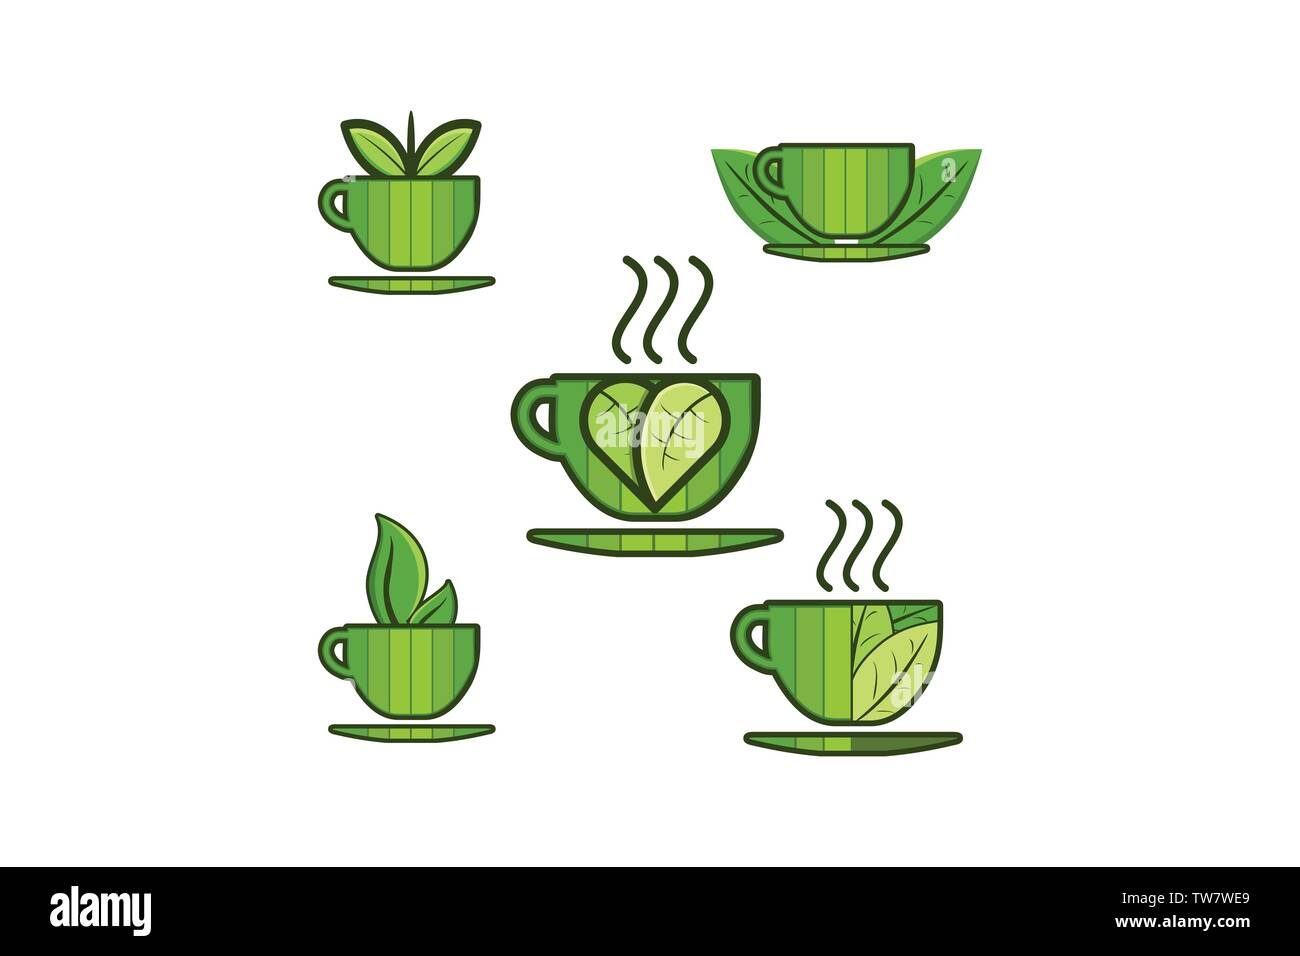 set mug jar cup leaf logo designs inspiration isolated on white background stock vector image art alamy alamy